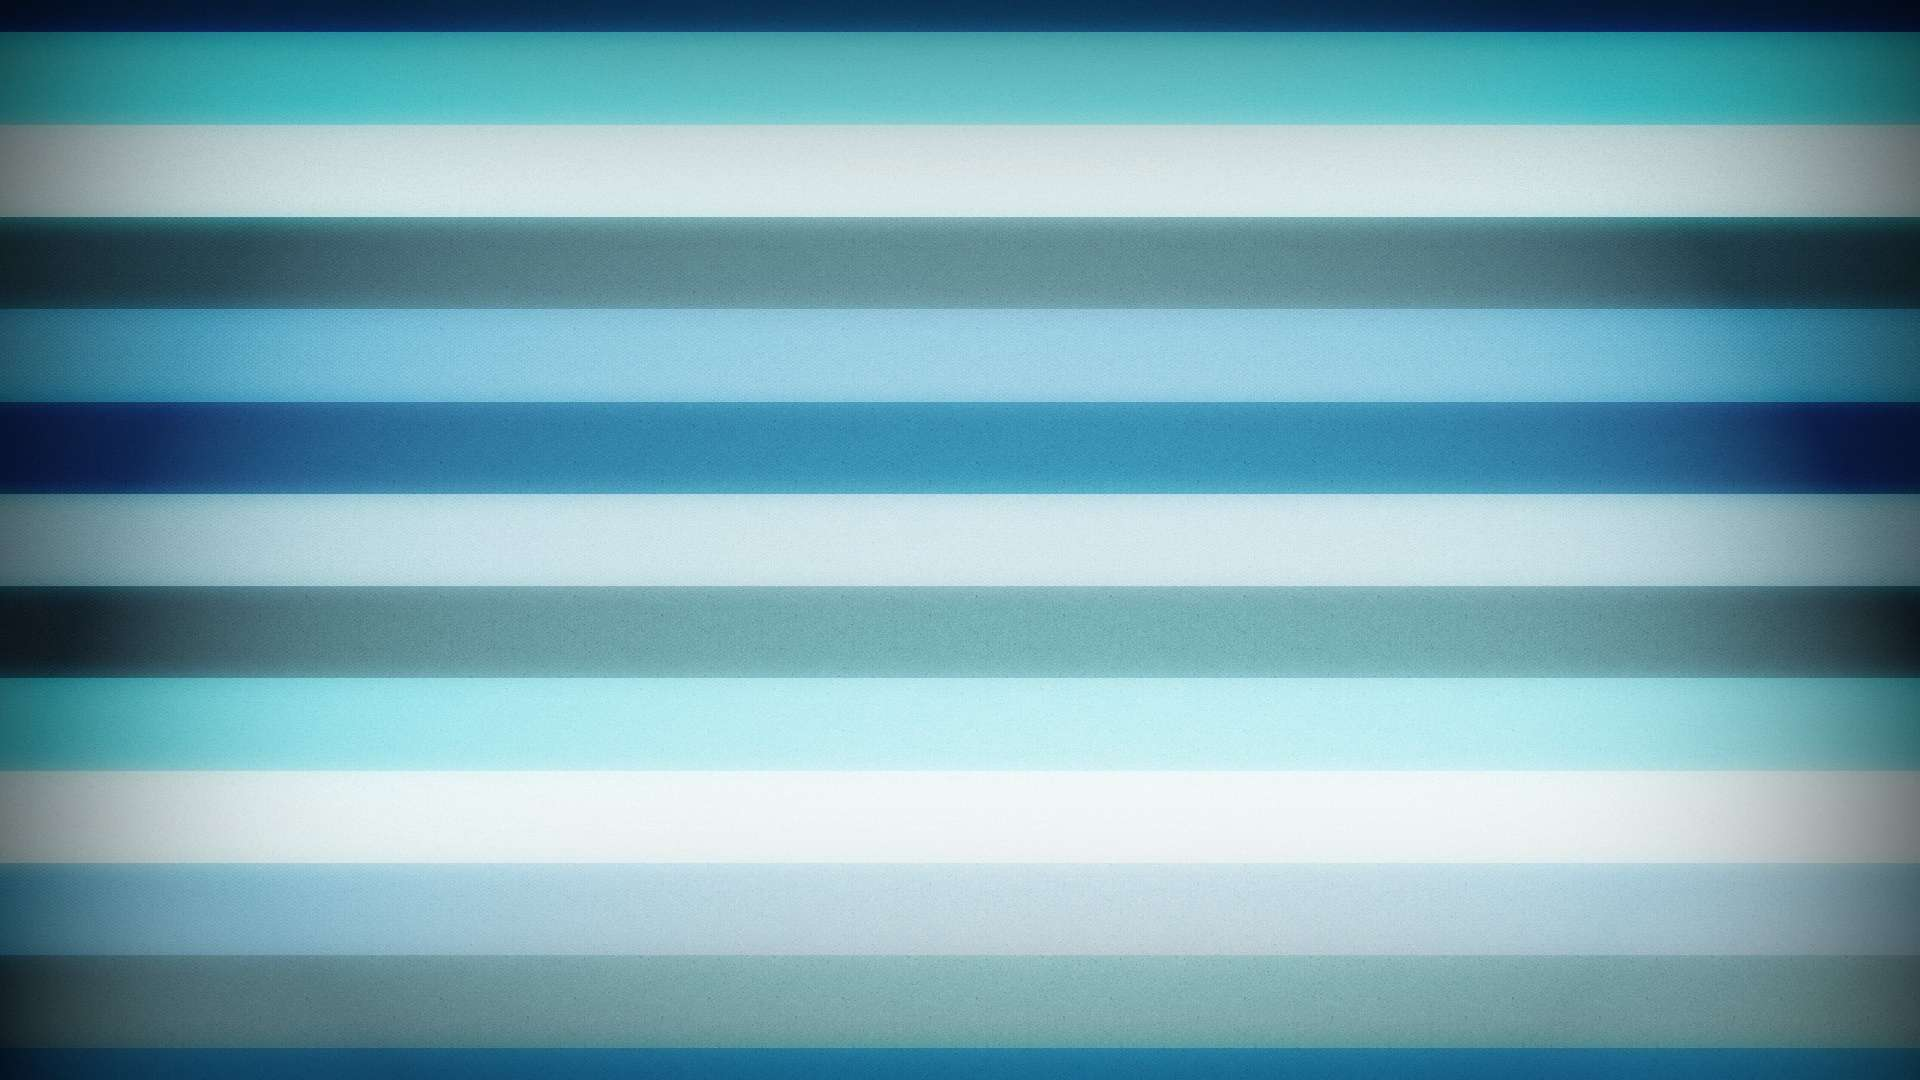 42 Gray Horizontal Striped Wallpaper On Wallpapersafari